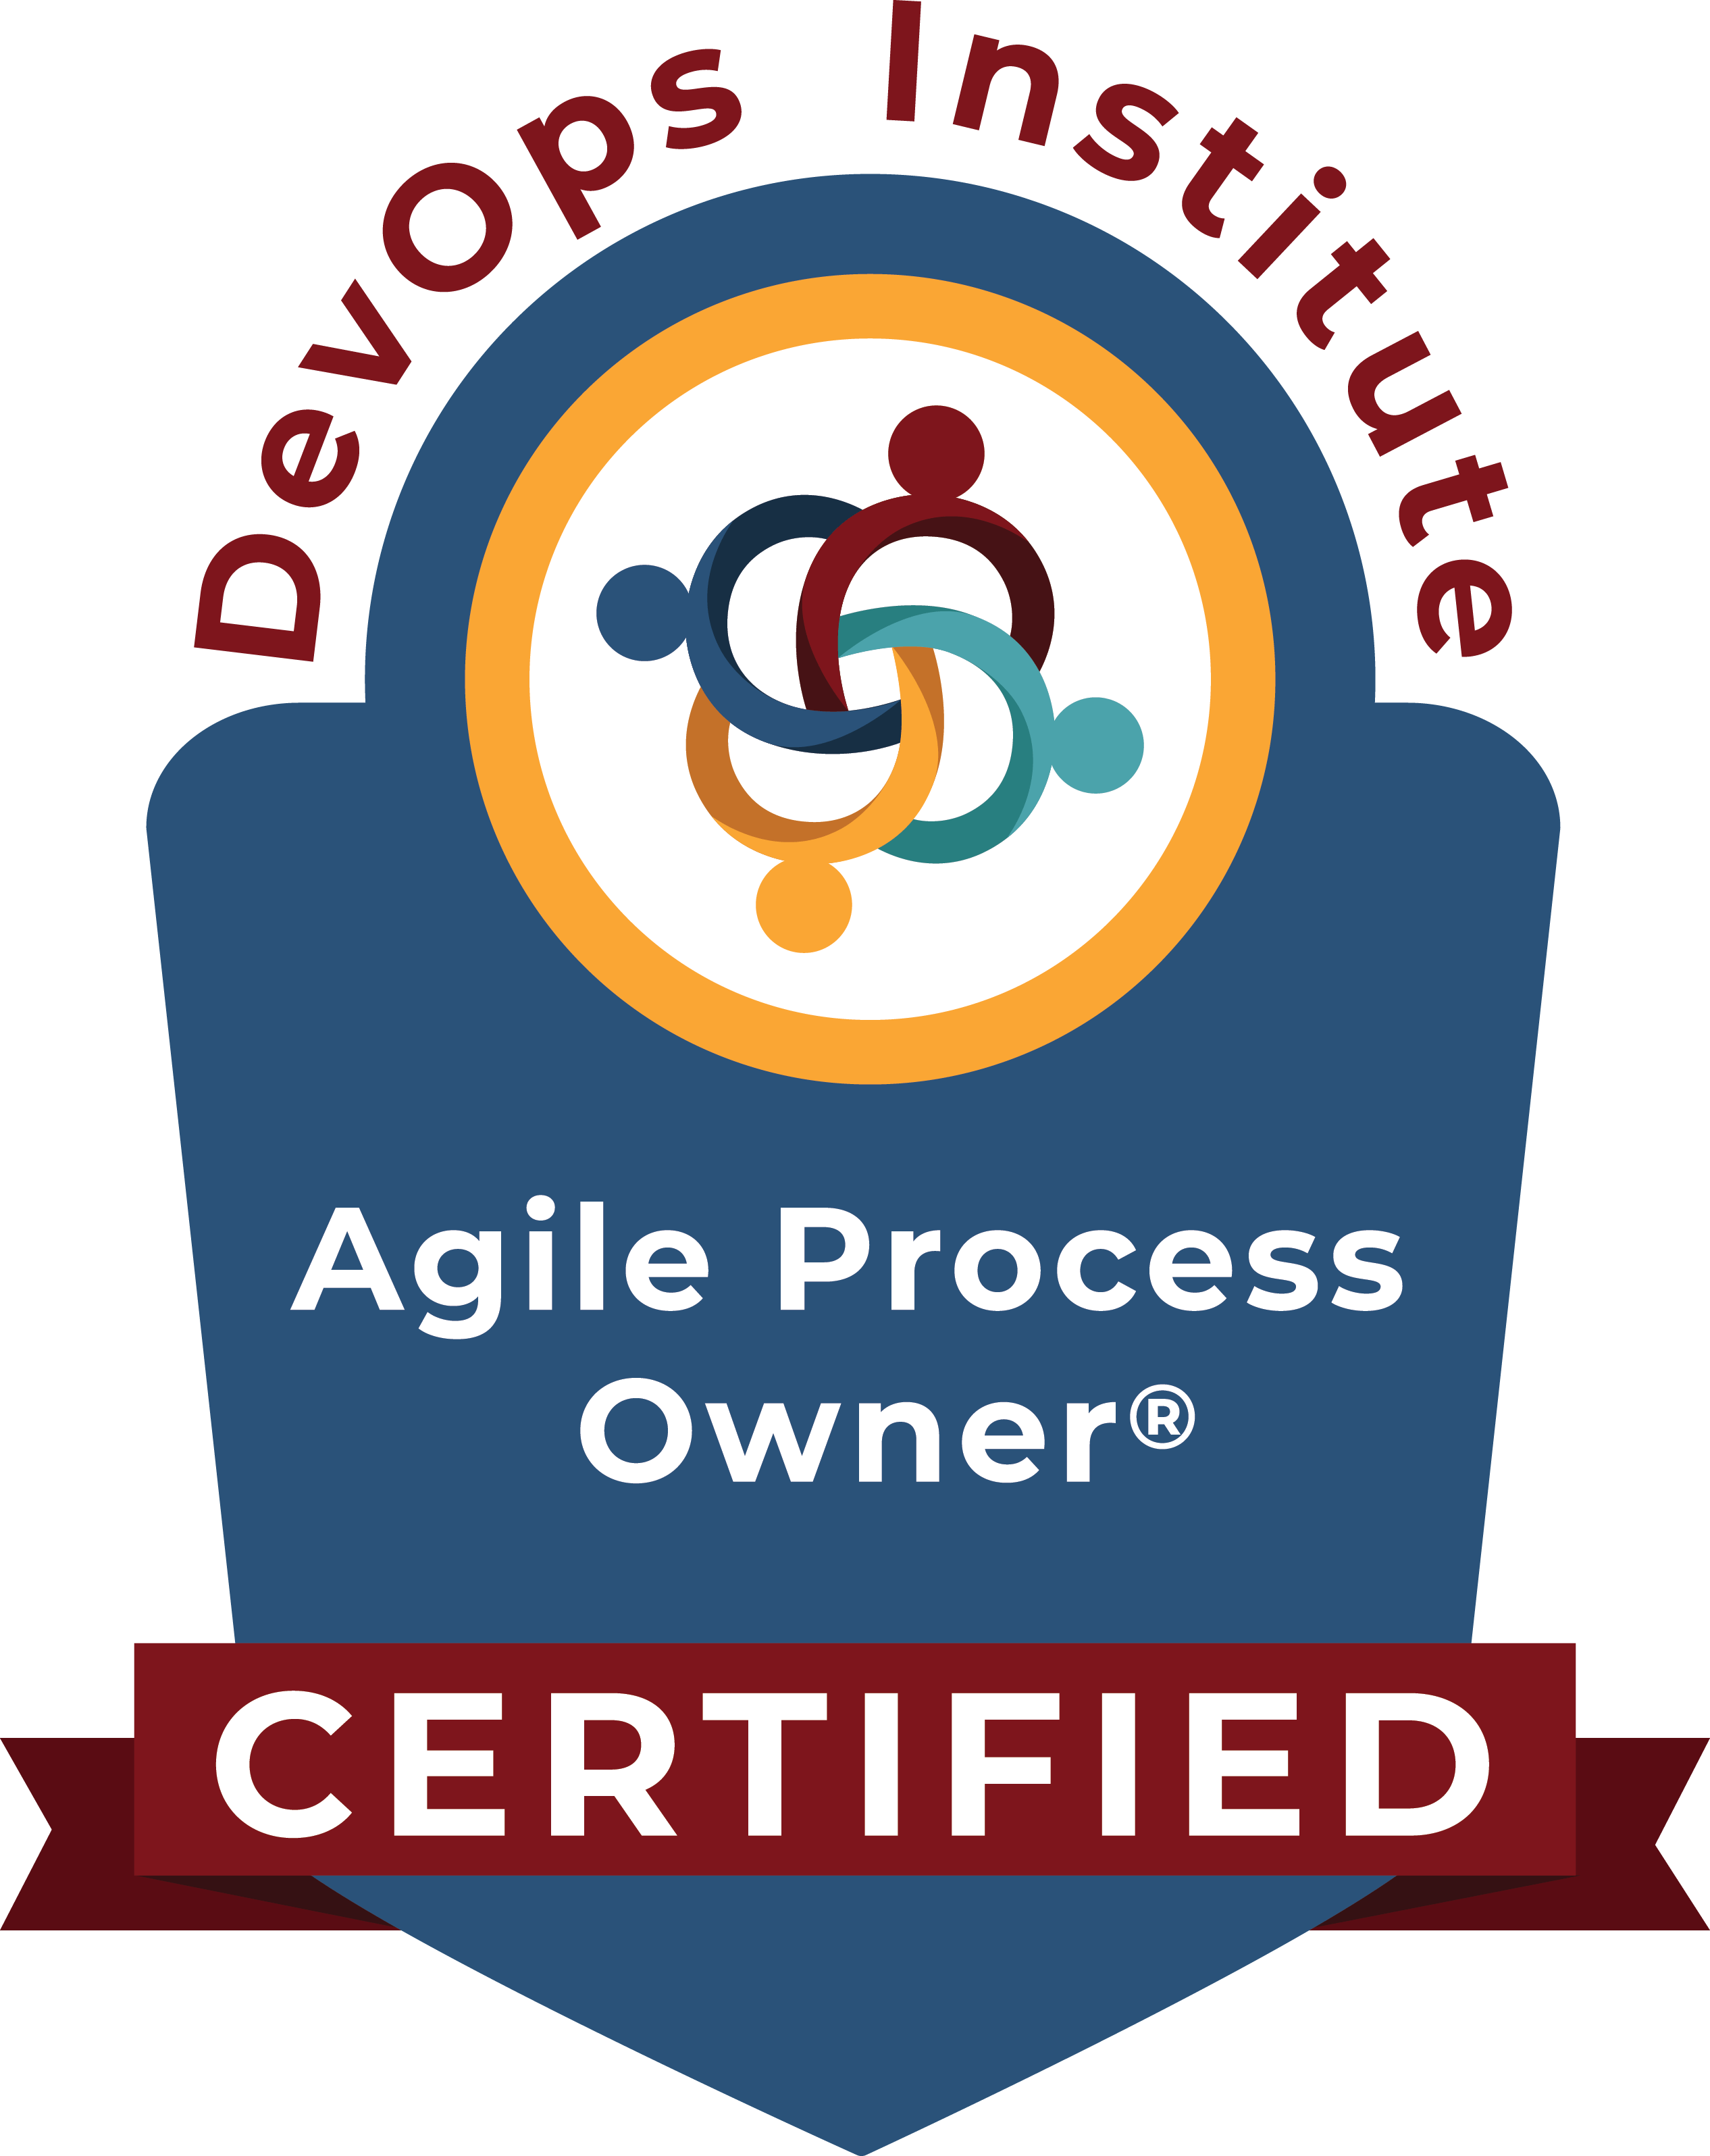 Agile process owner certification